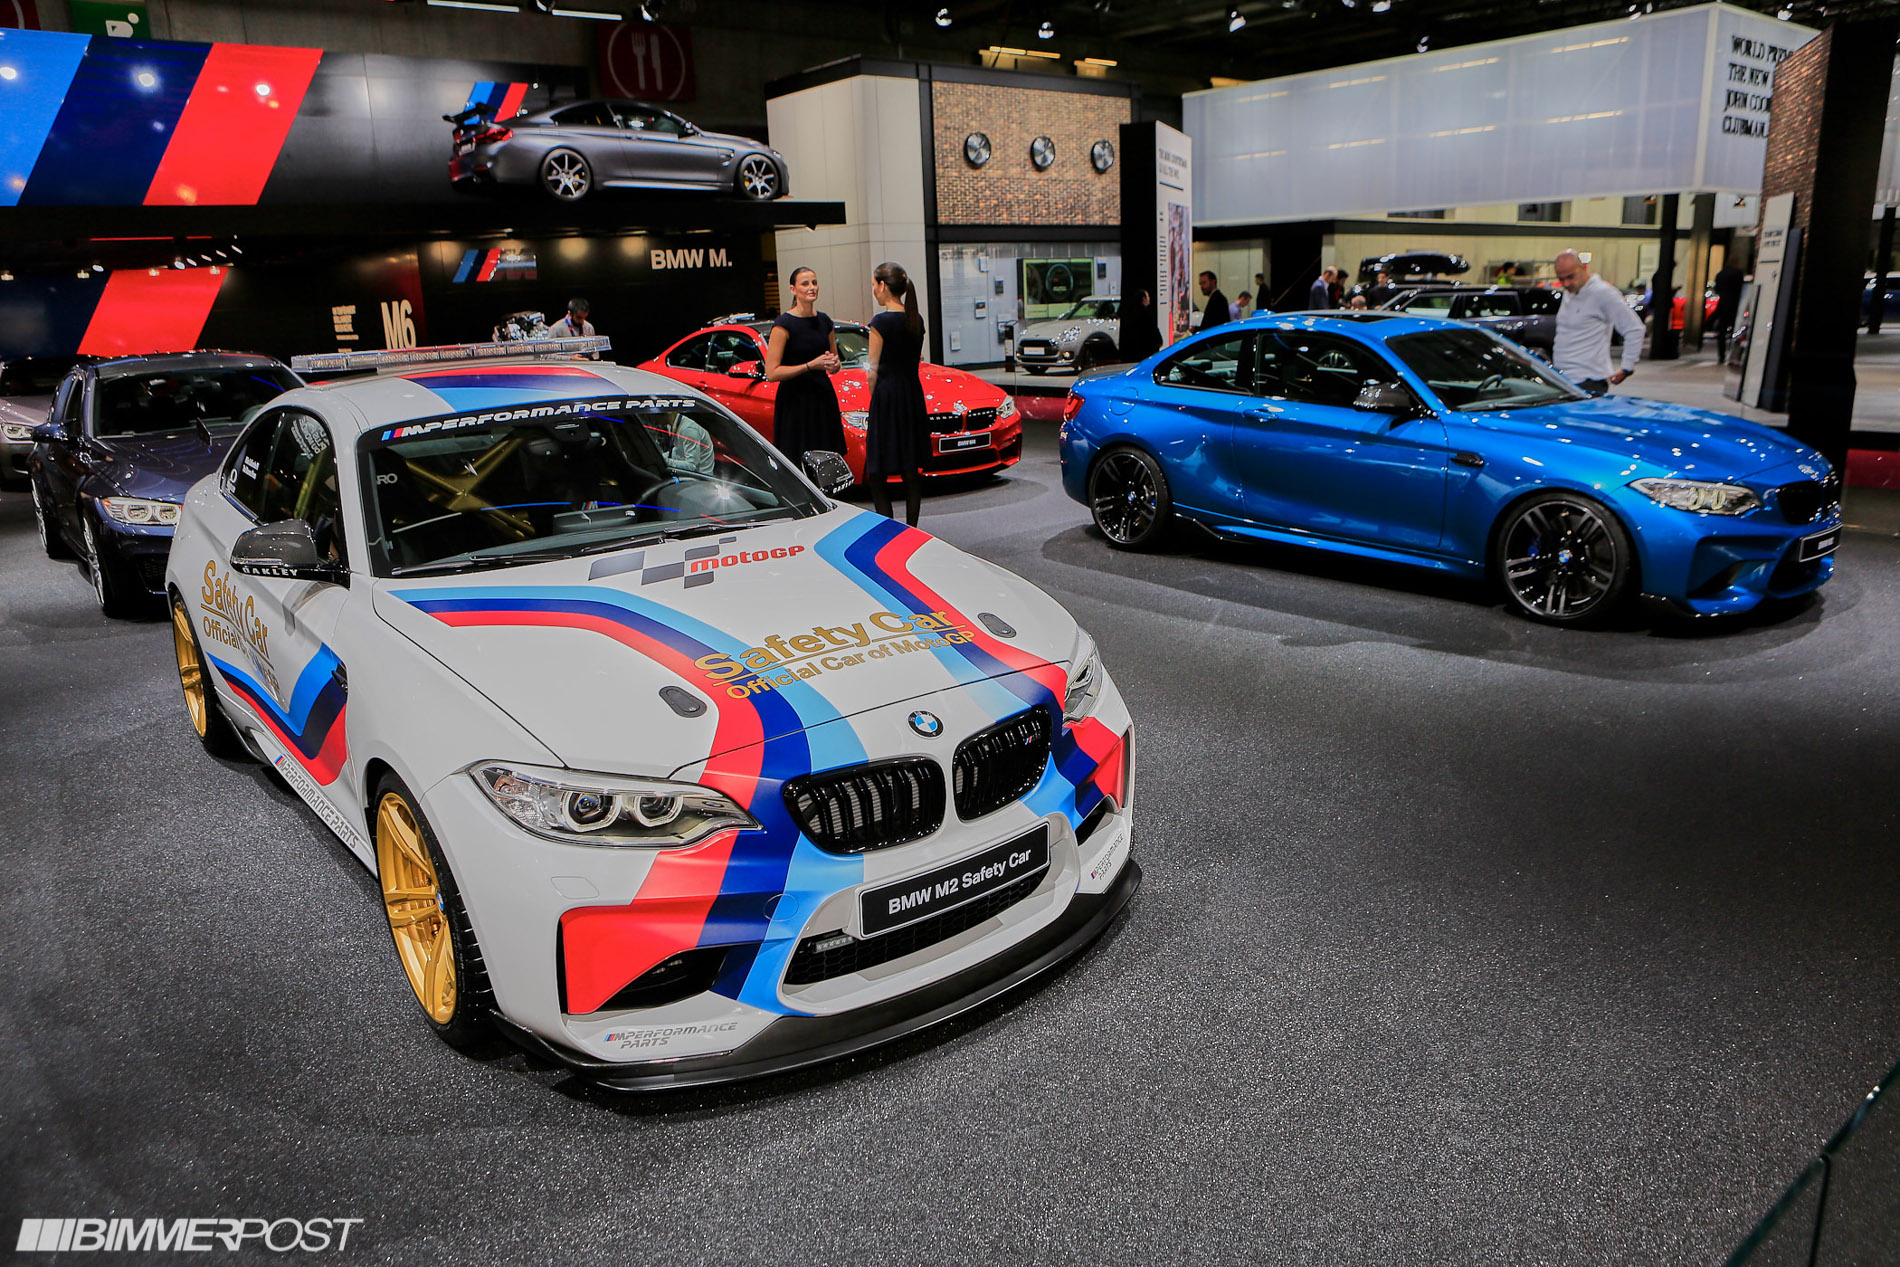 Paris 2016: BMW M2 MotoGP Safety Car Featuring M